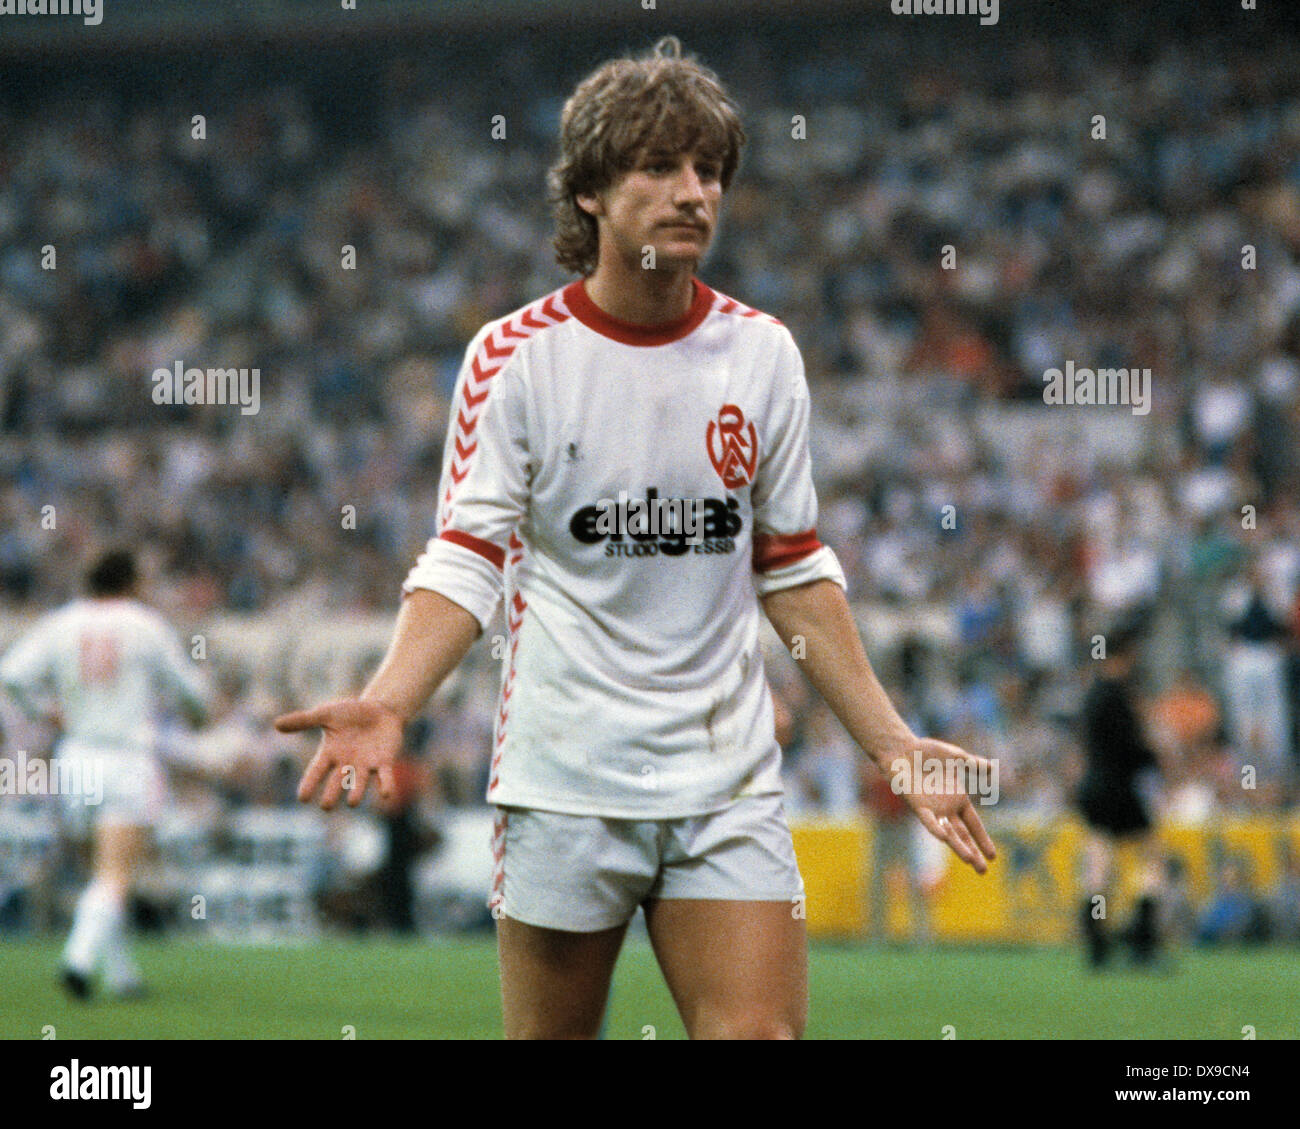 football, 2. Bundesliga Nord, 2. Bundesliga Sued, 1979/1980, relegation match to Bundesliga 1980/1981, return leg, Georg Melches Stadium, Rot Weiss Essen versus Karlsruher SC 3:1, scene of the match, Frank Mill (RWE) - Stock Image